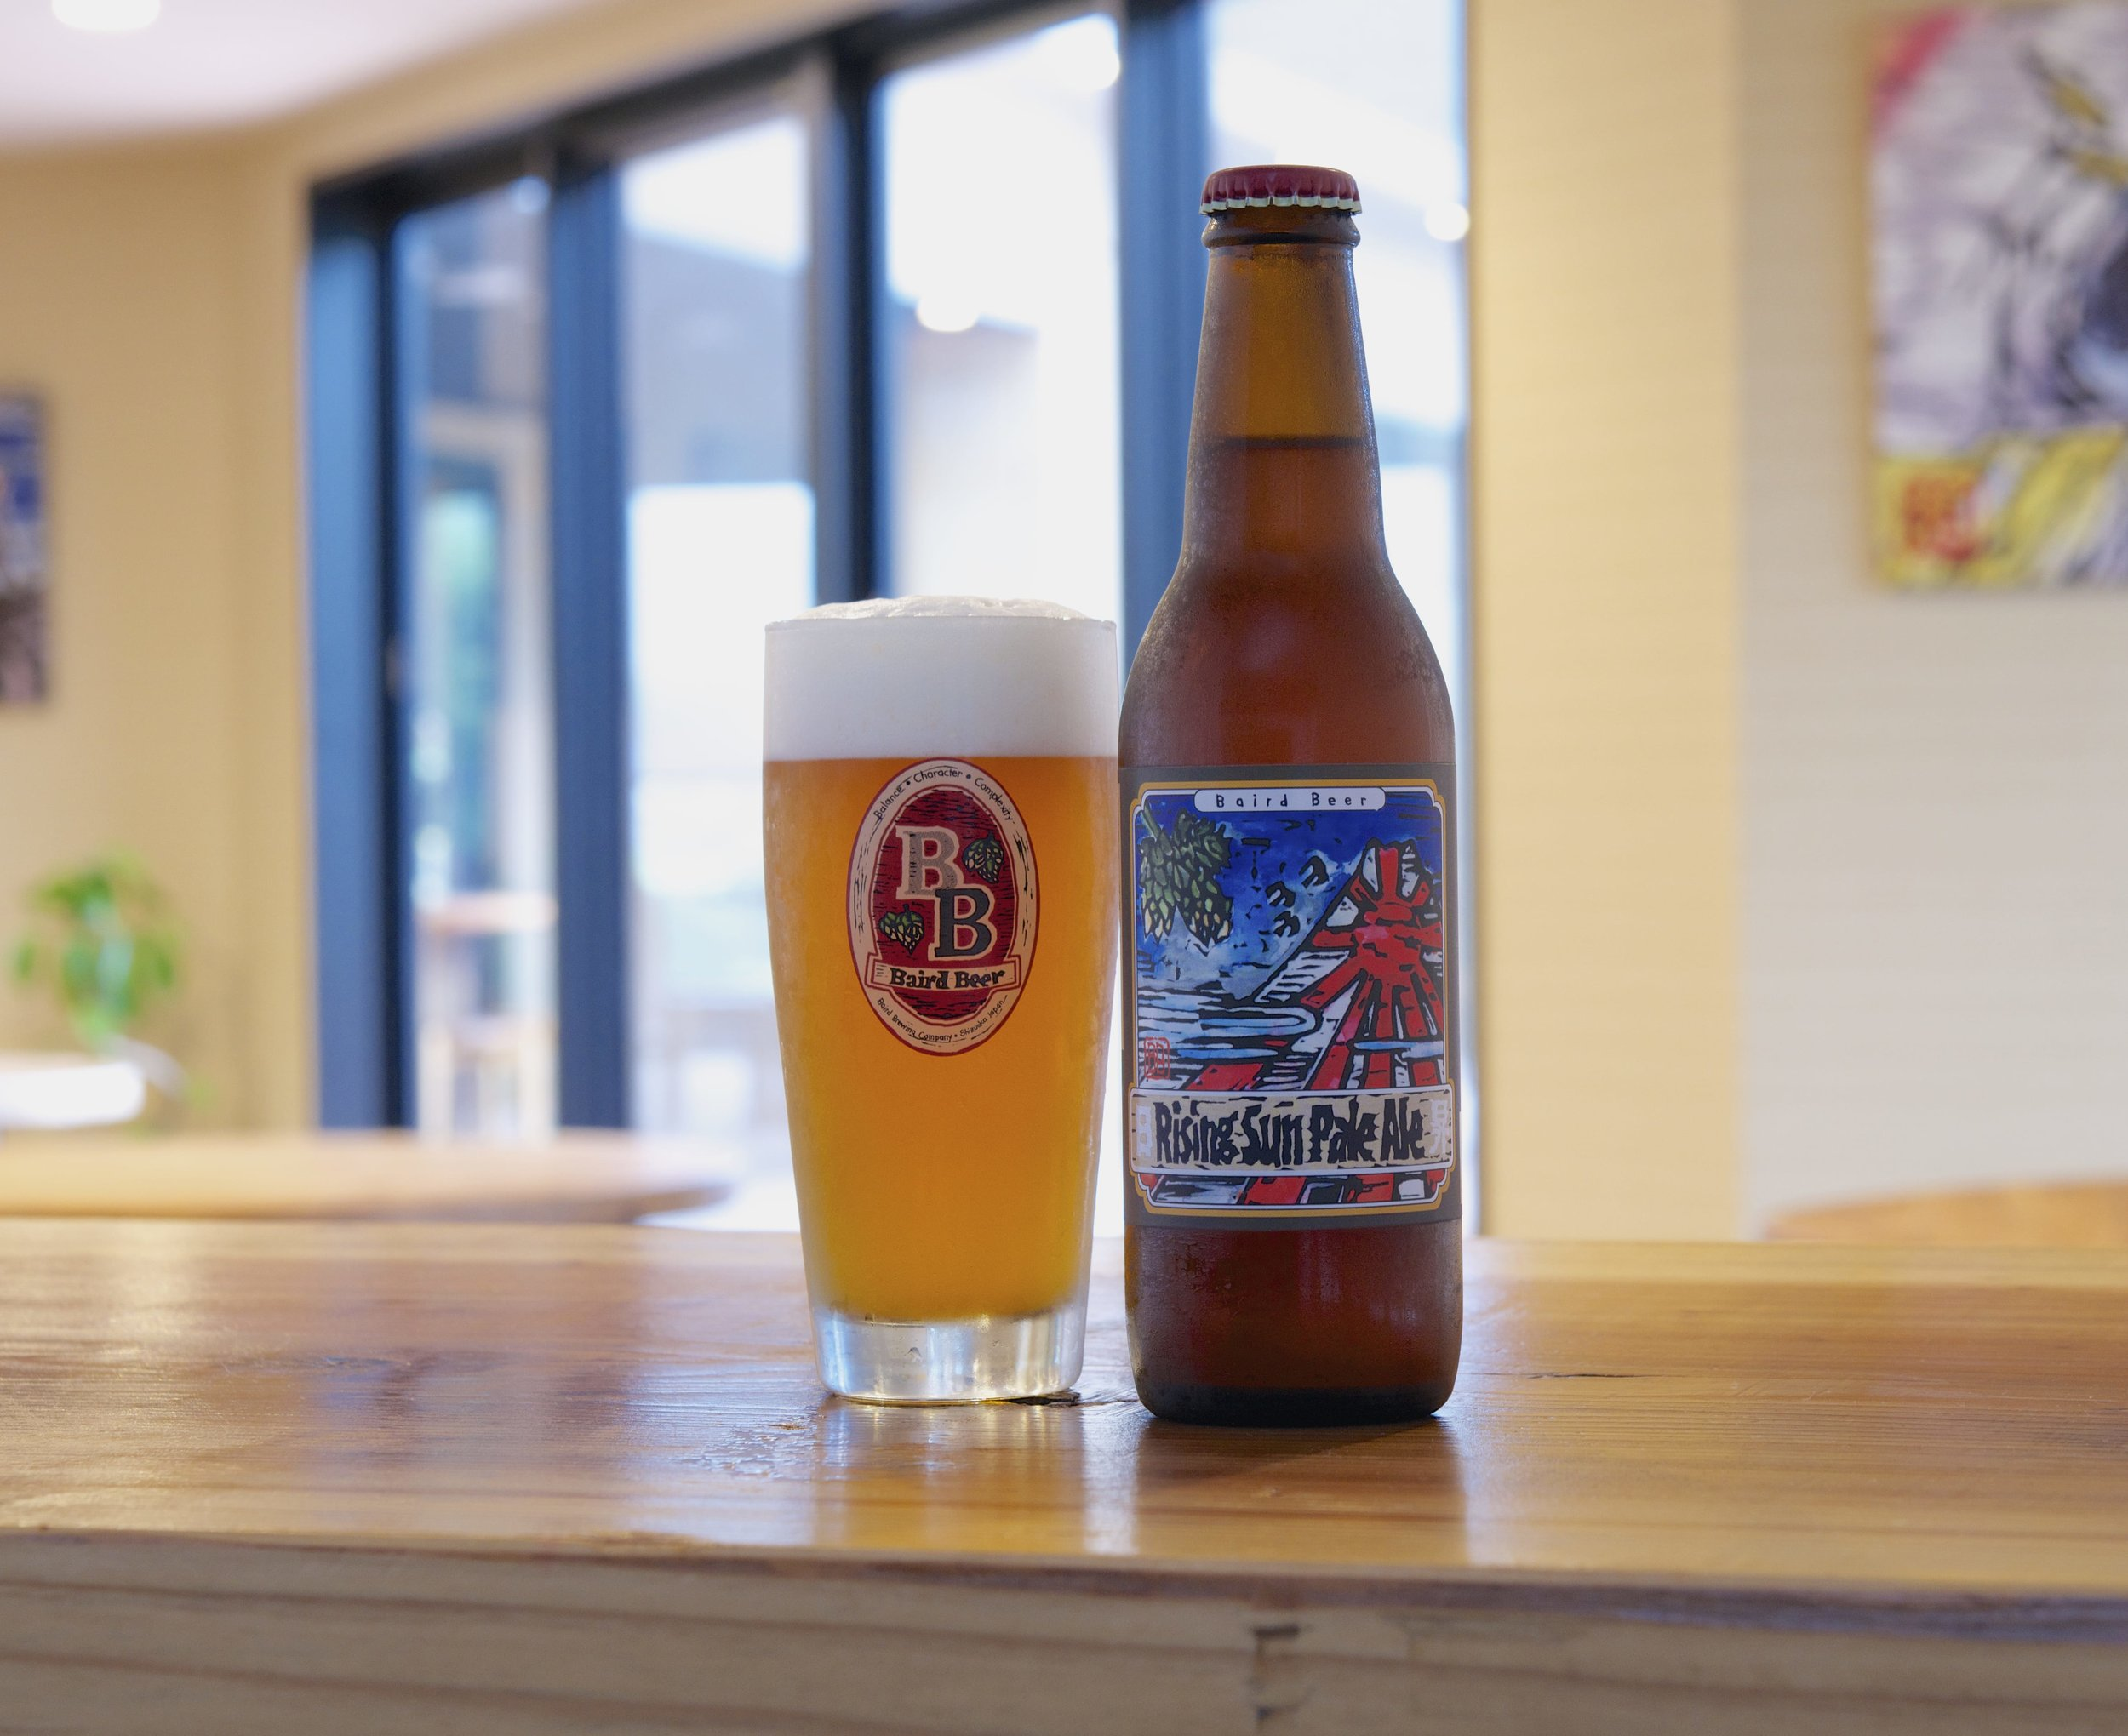 Rising Sun Pale Ale- One of my personal favorites from Baird Brewery